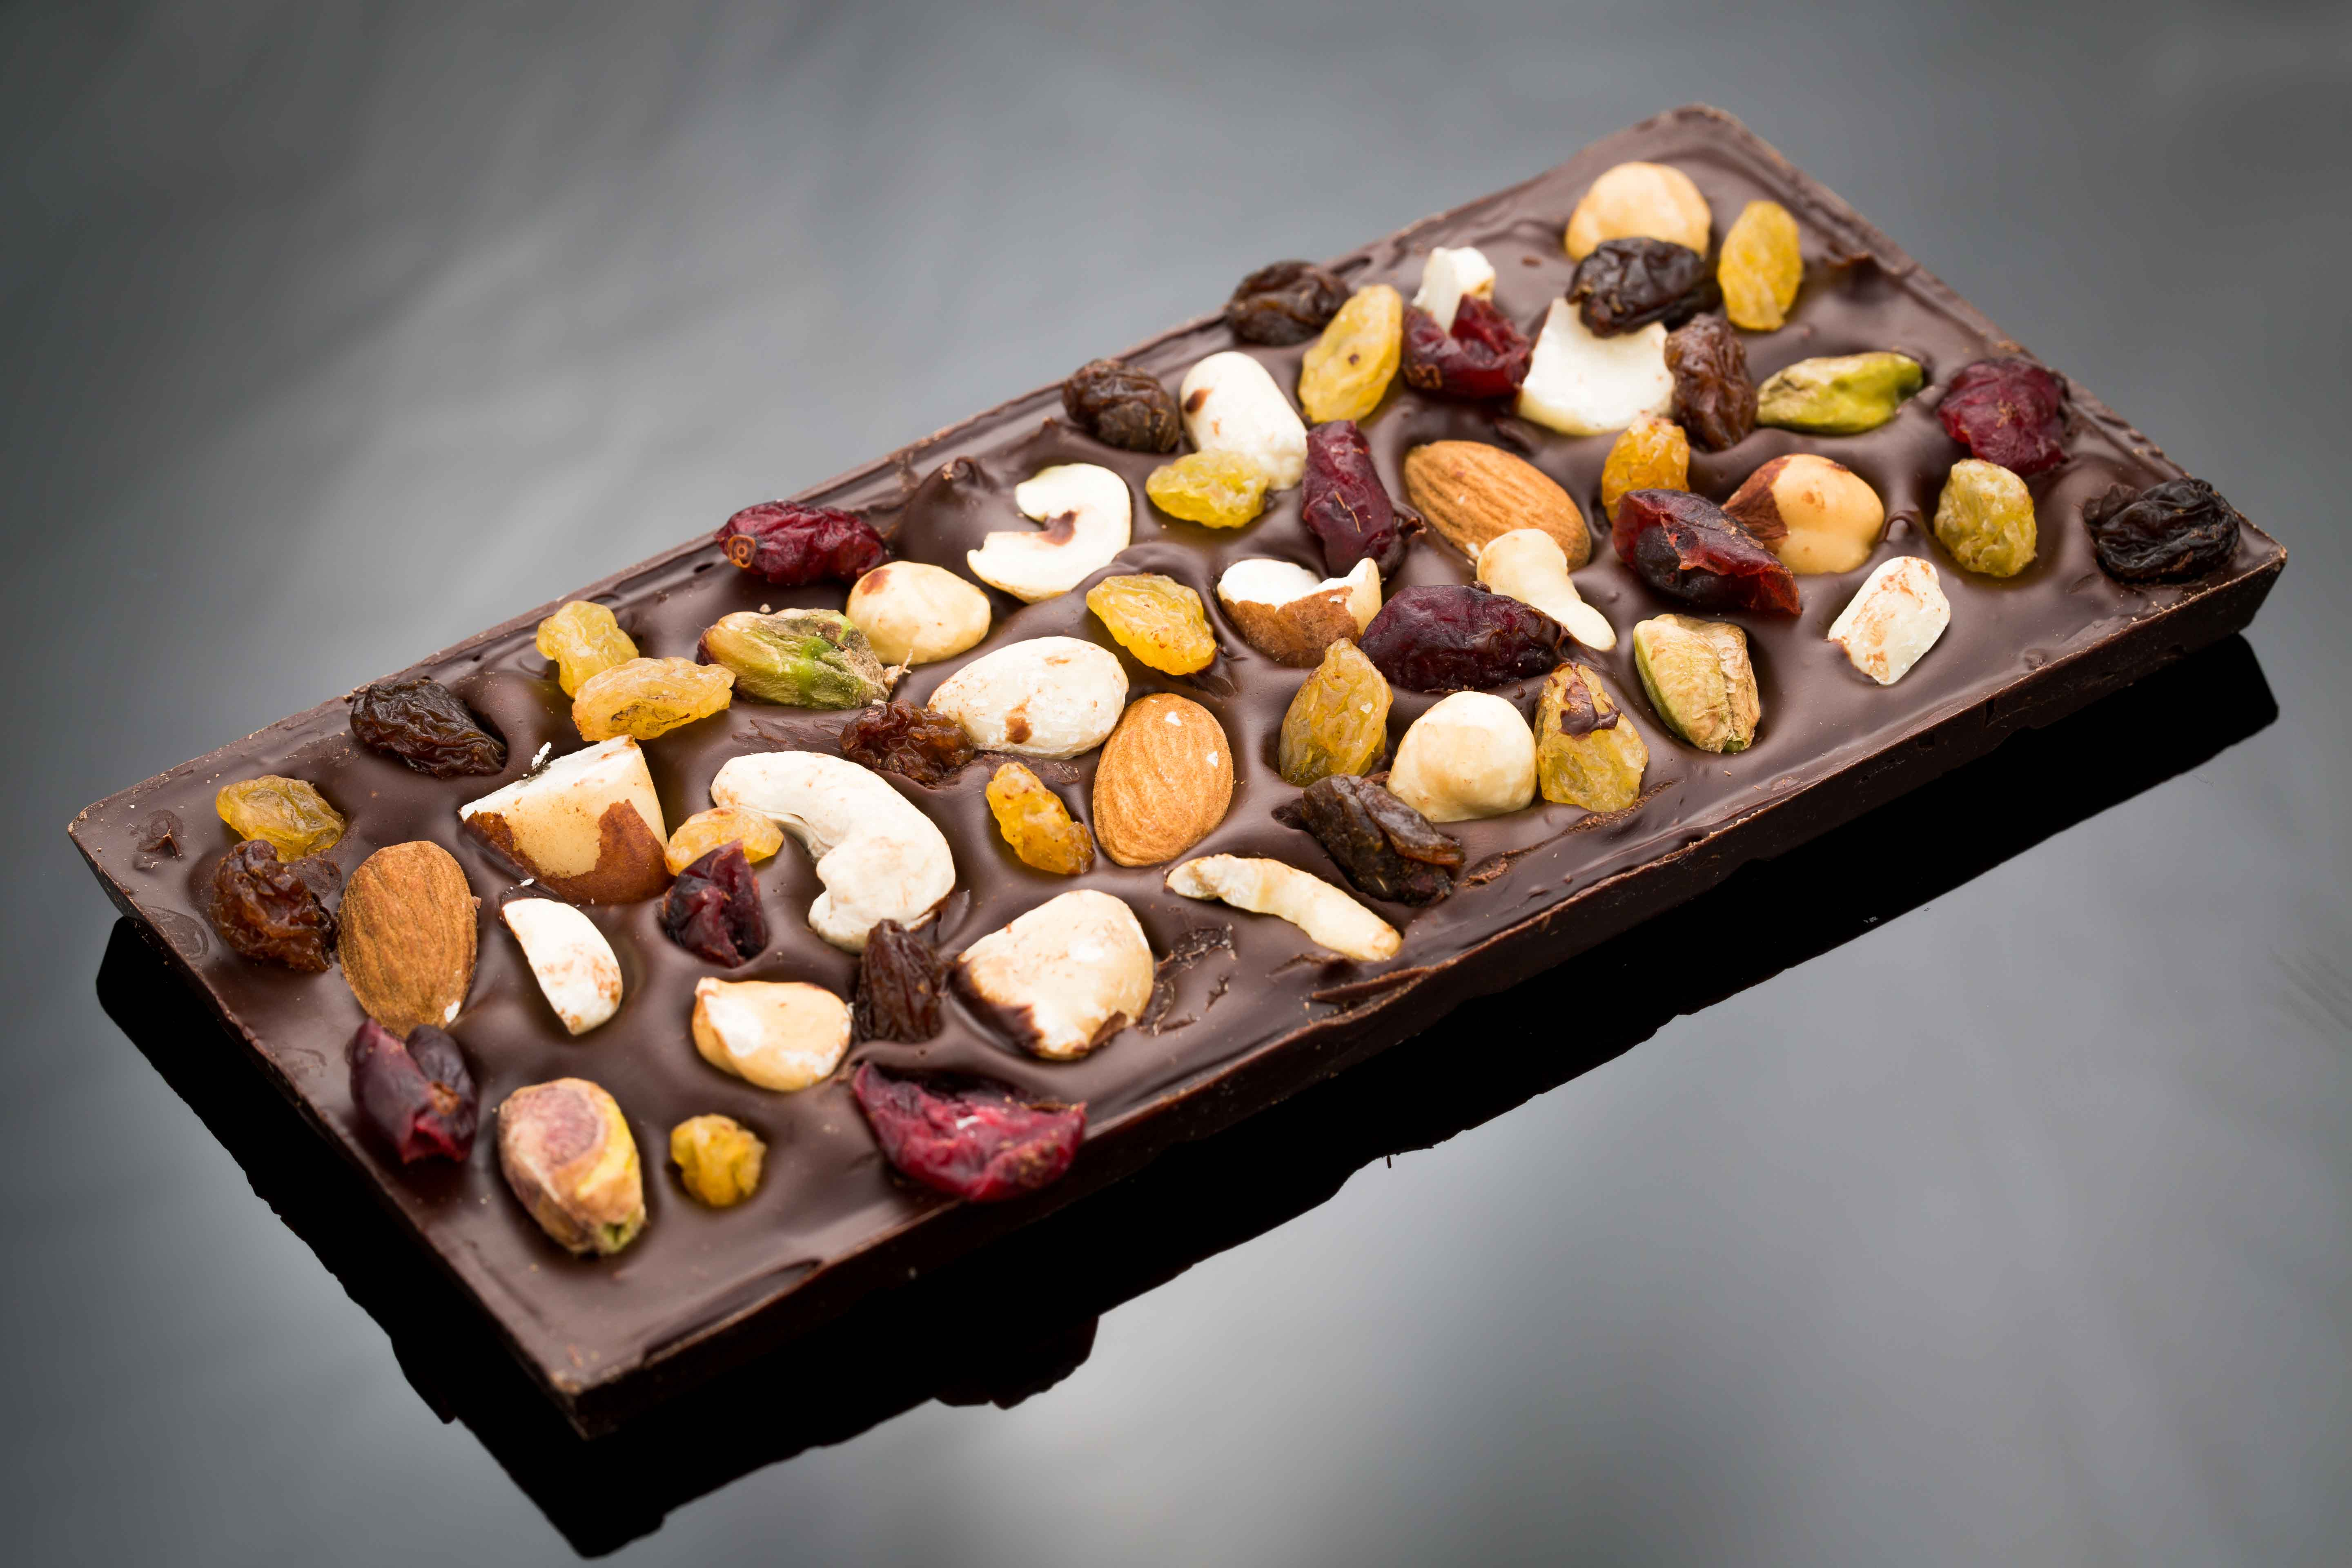 Chocolate Gifts, Dark Chocolate Fruit and Nut - The Chocolate Room